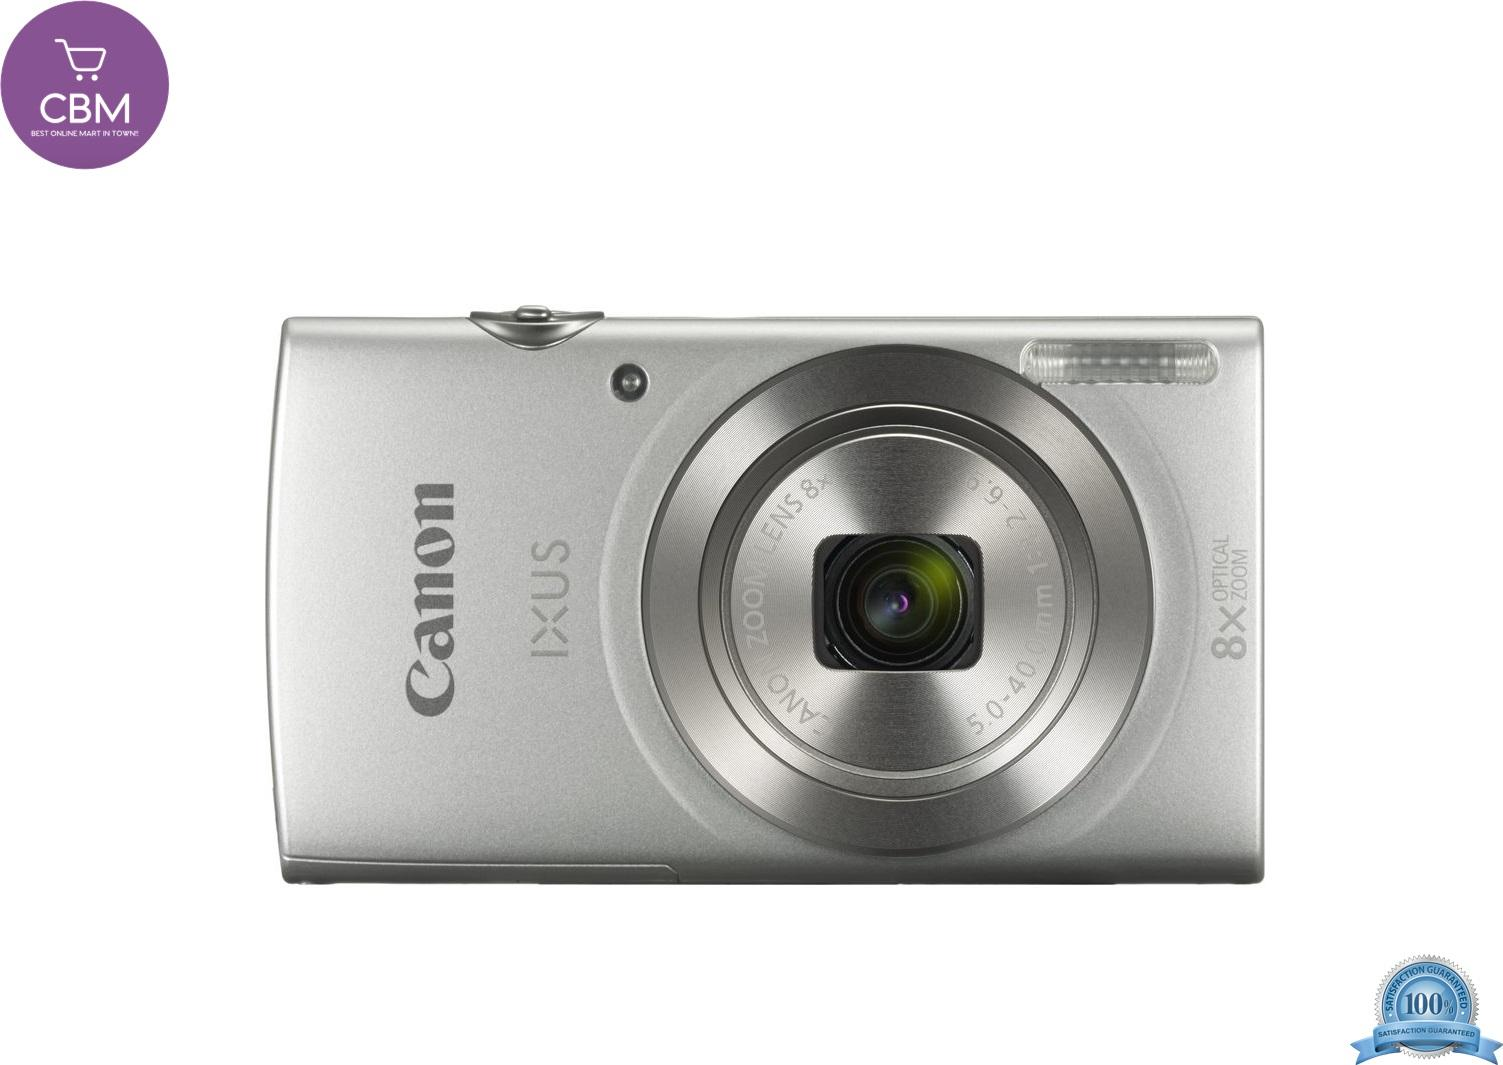 Buy CBM Point & Shoot at Best Prices Online in Pakistan